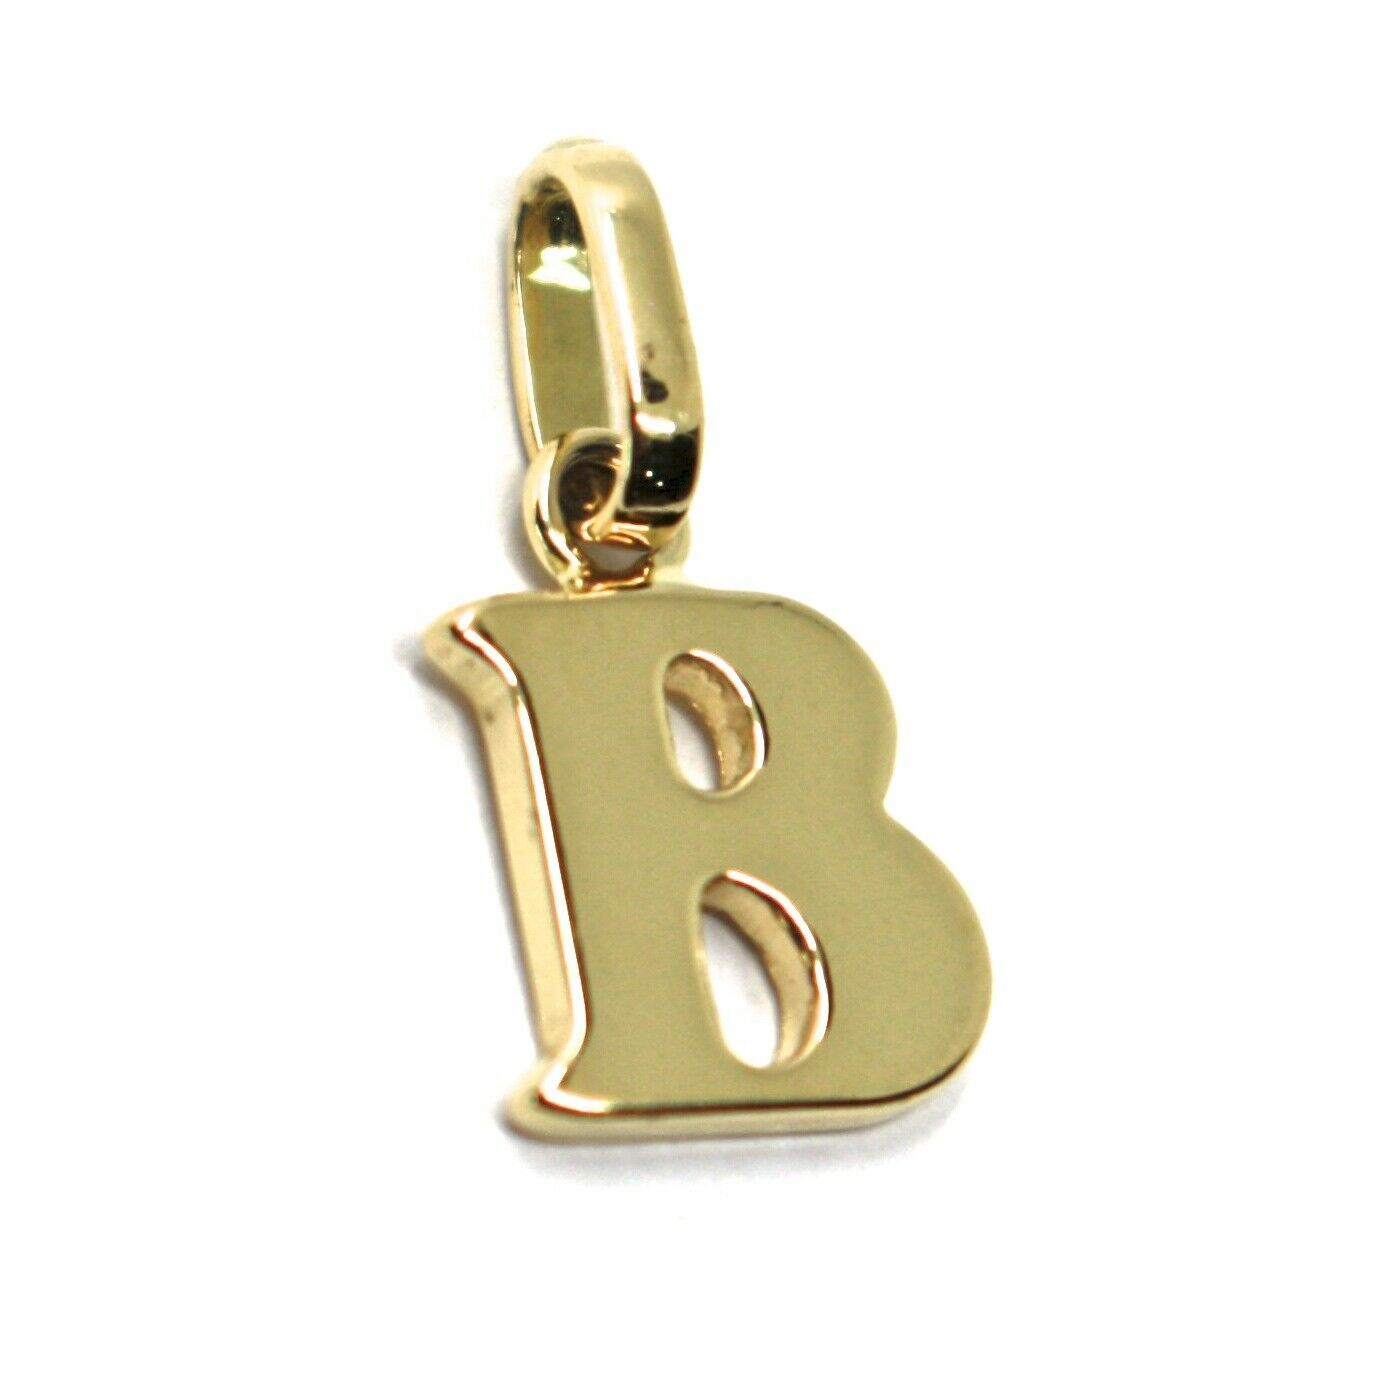 SOLID 18K YELLOW GOLD PENDANT MINI INITIAL LETTER B, 1 CM, 0.4 INCHES